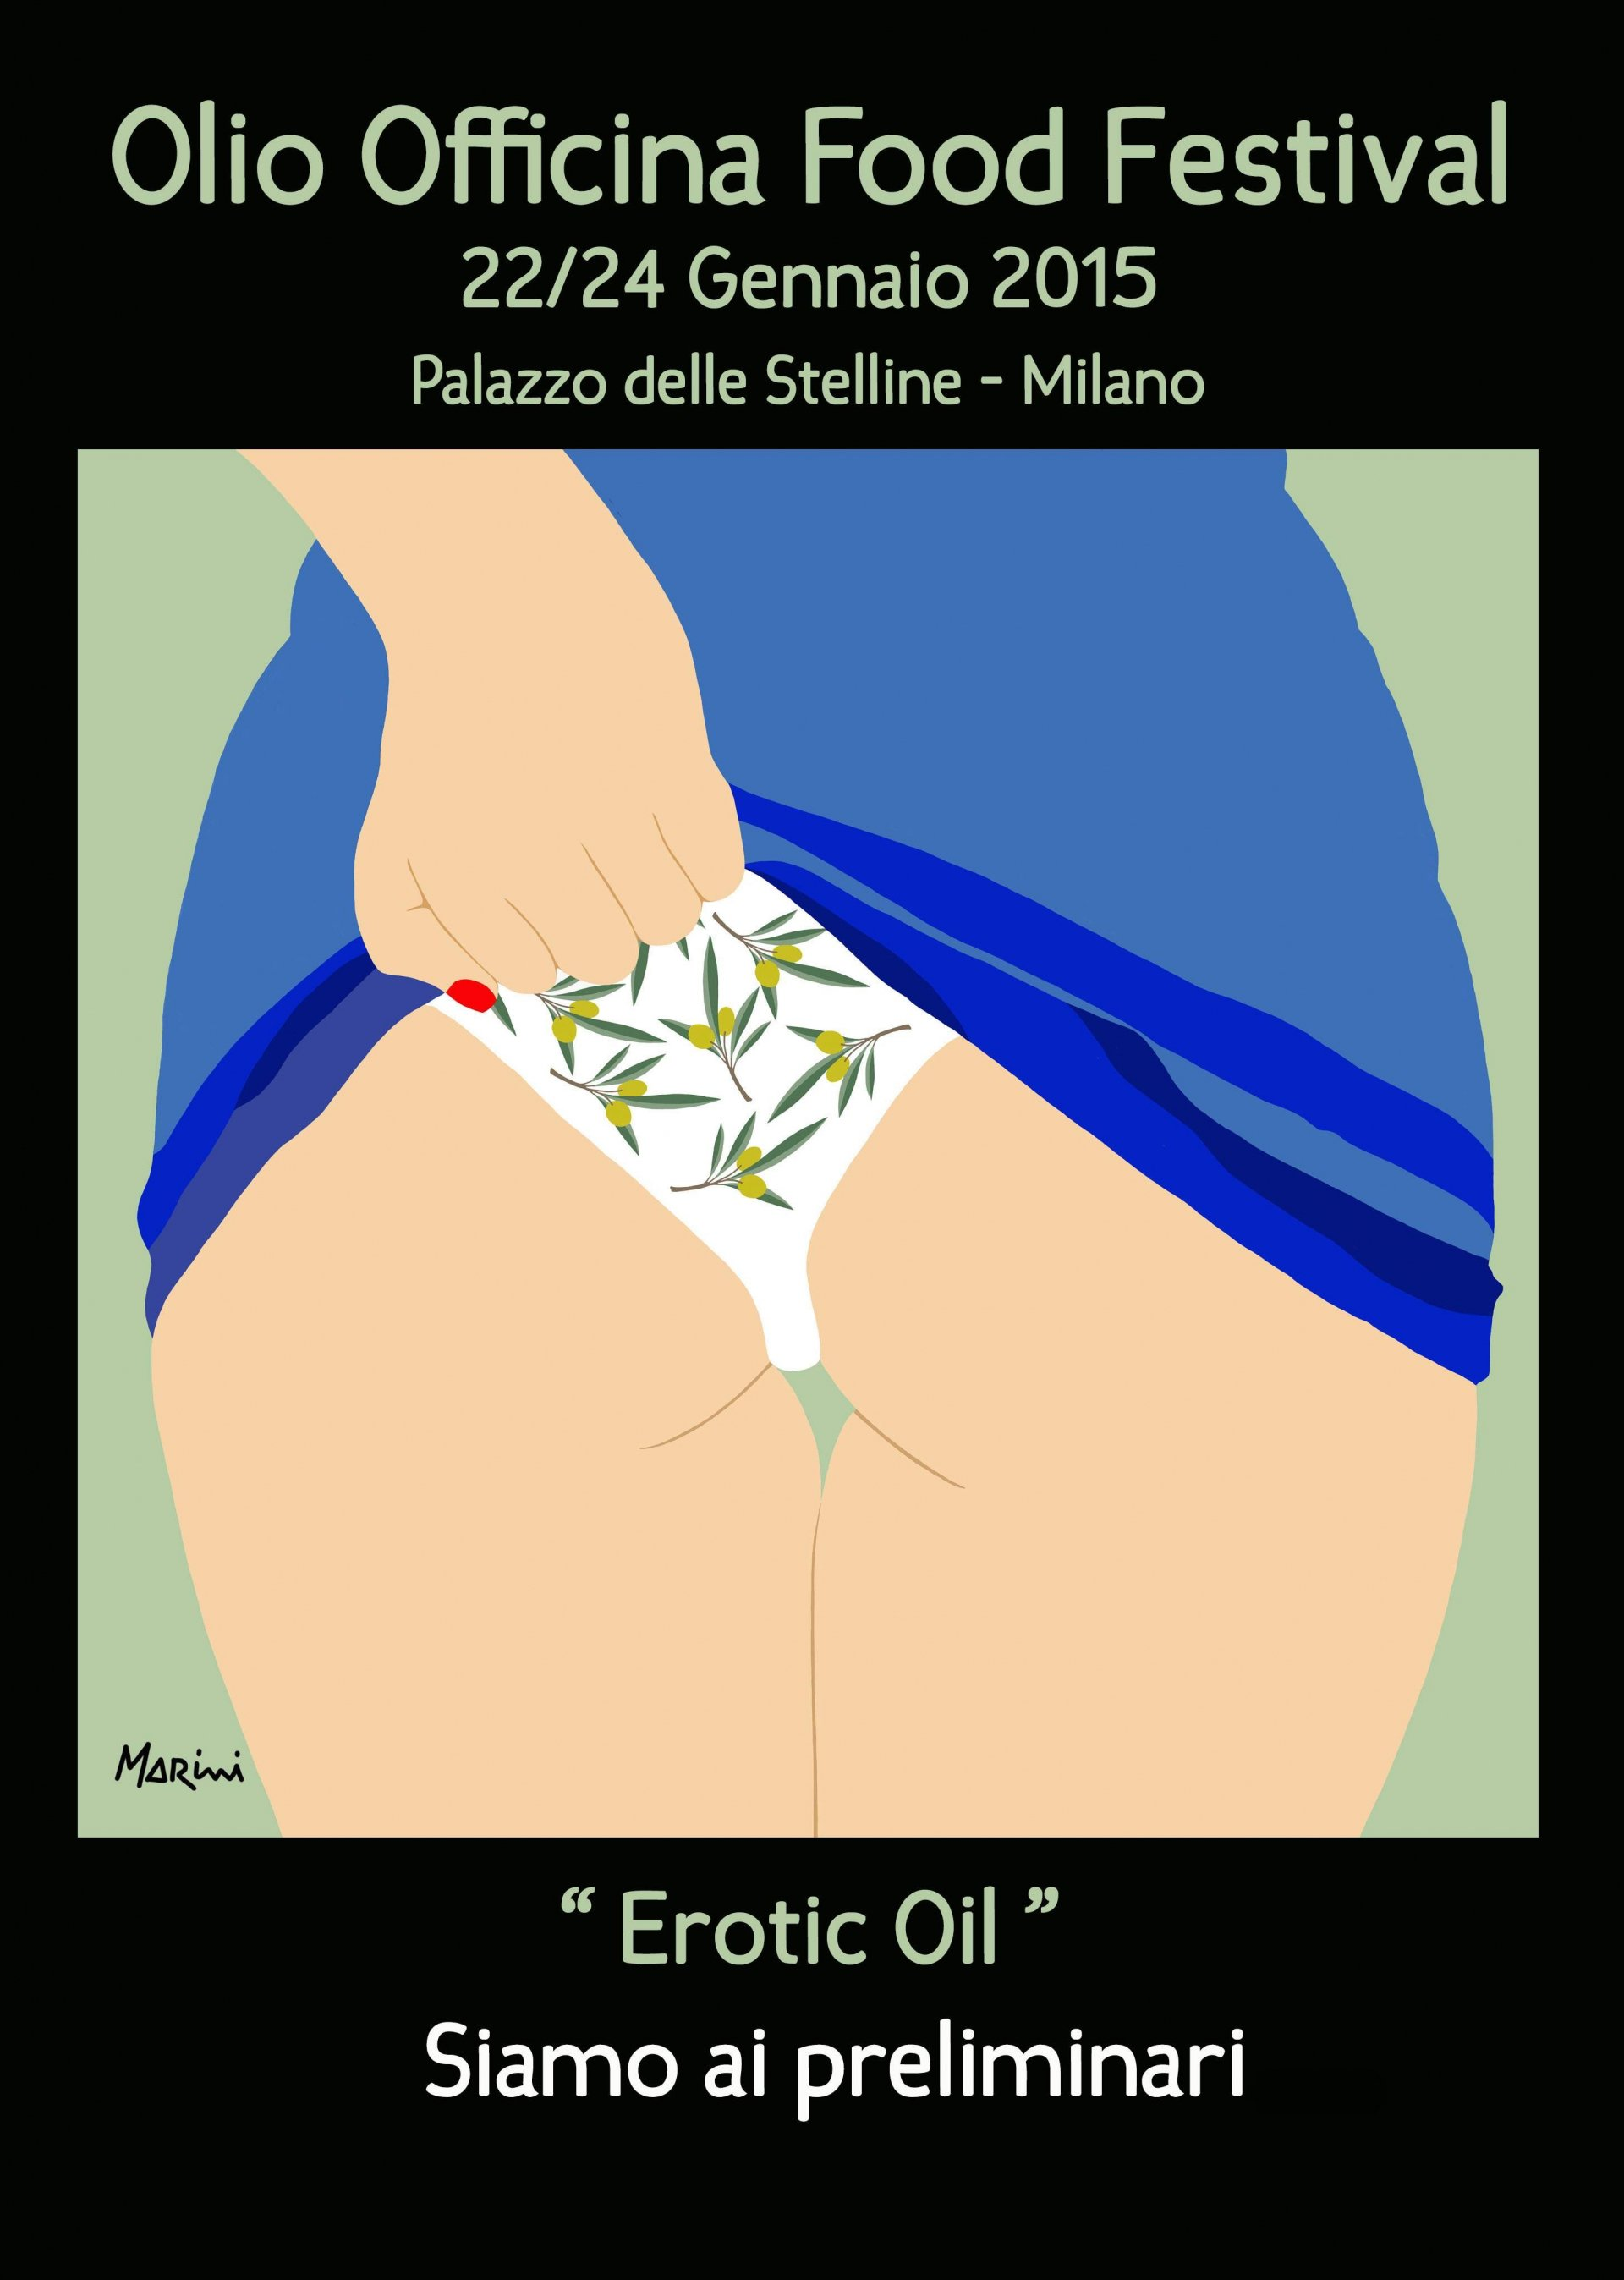 Erotic oil number one